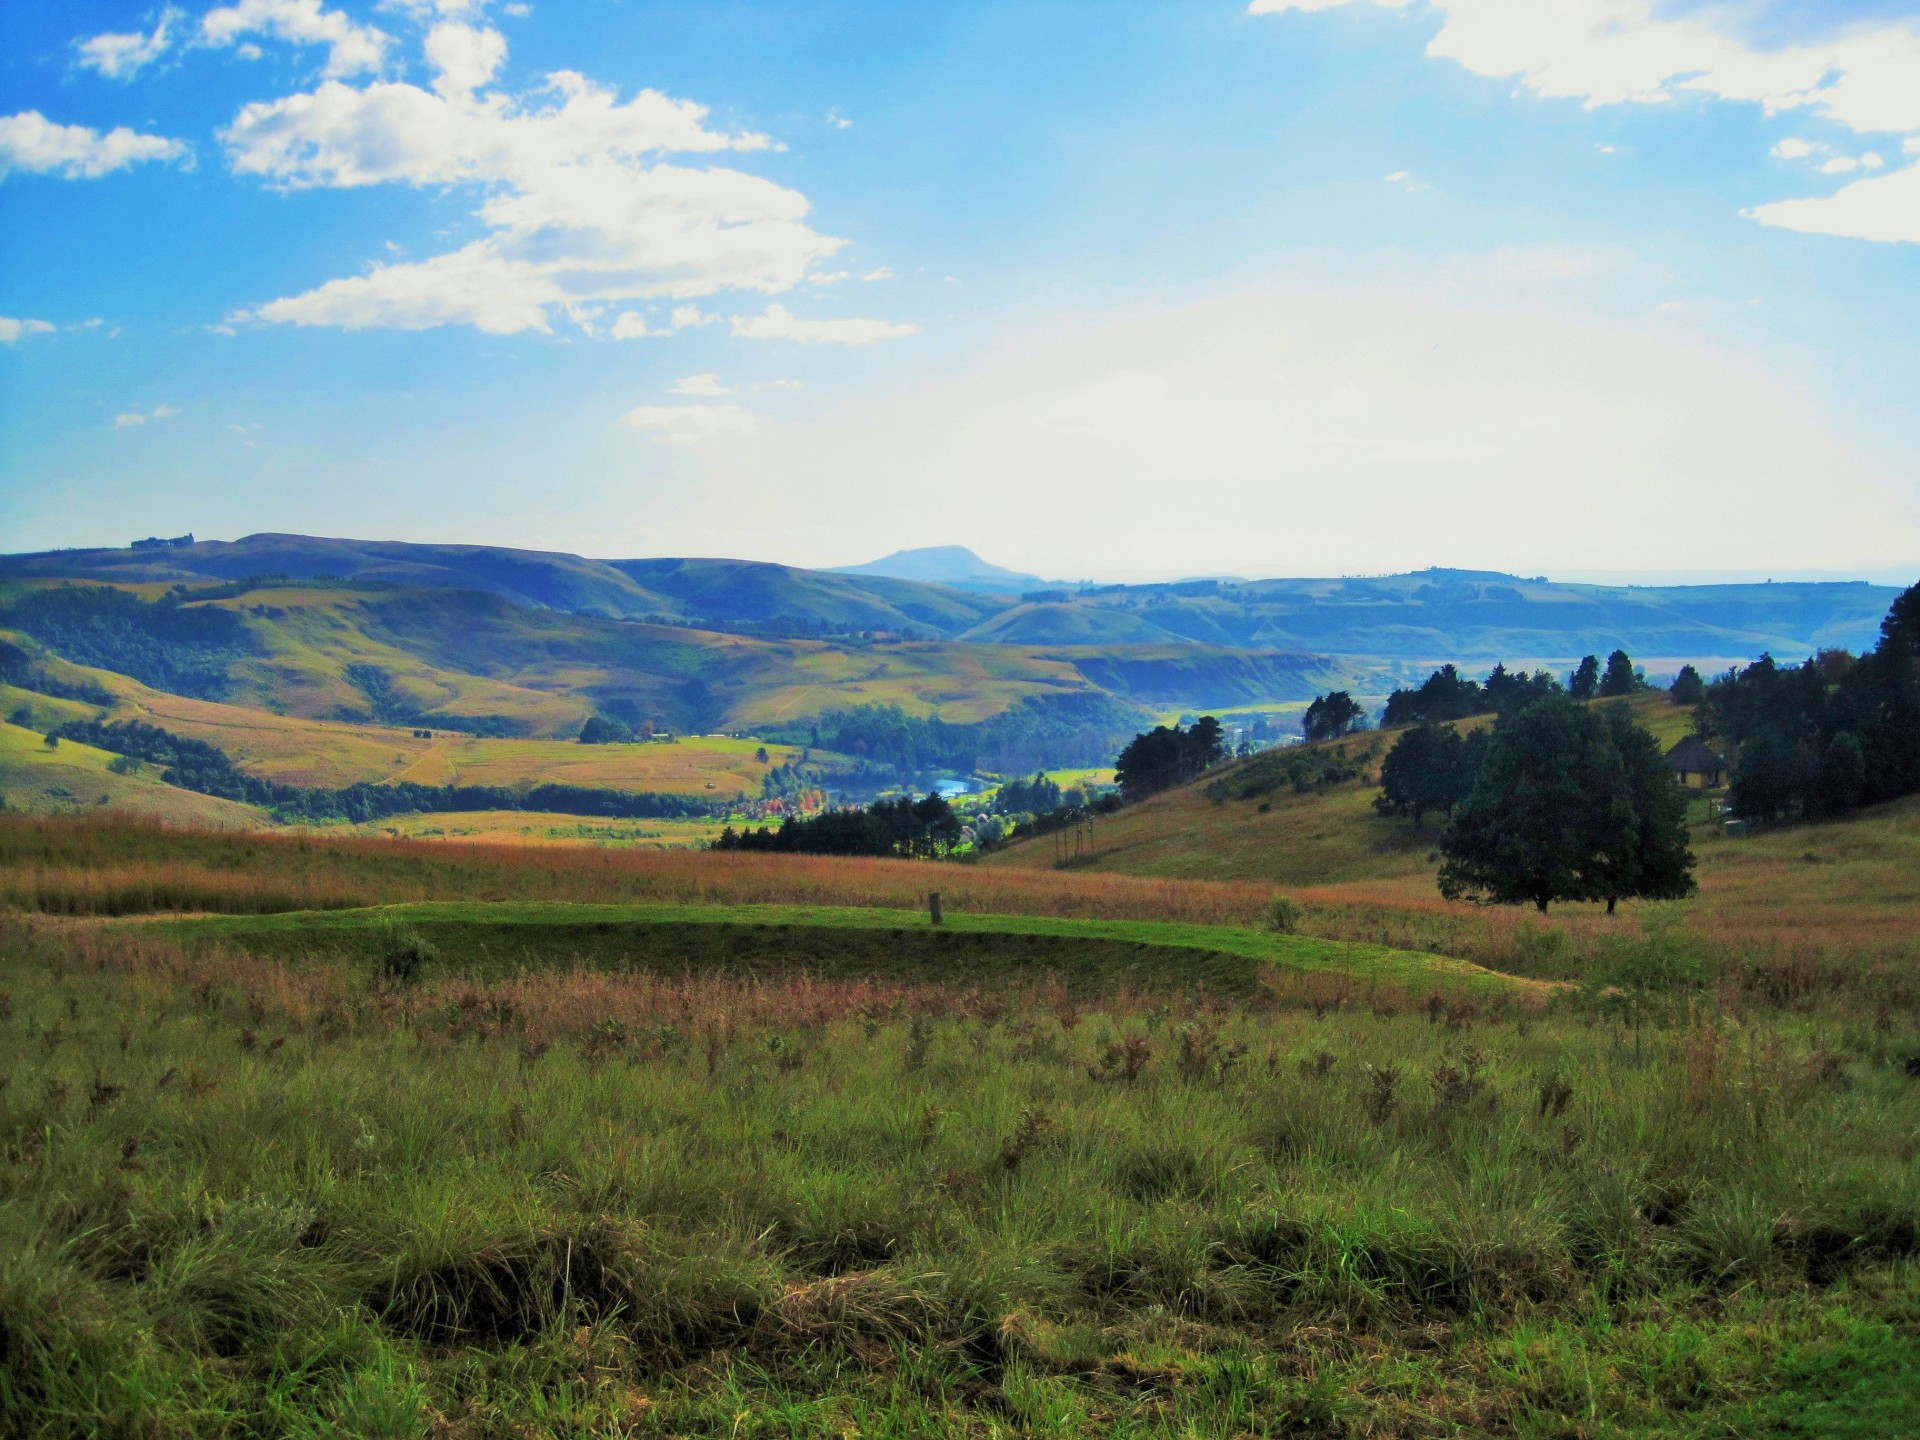 drakensberg-view-of-mountains.jpg